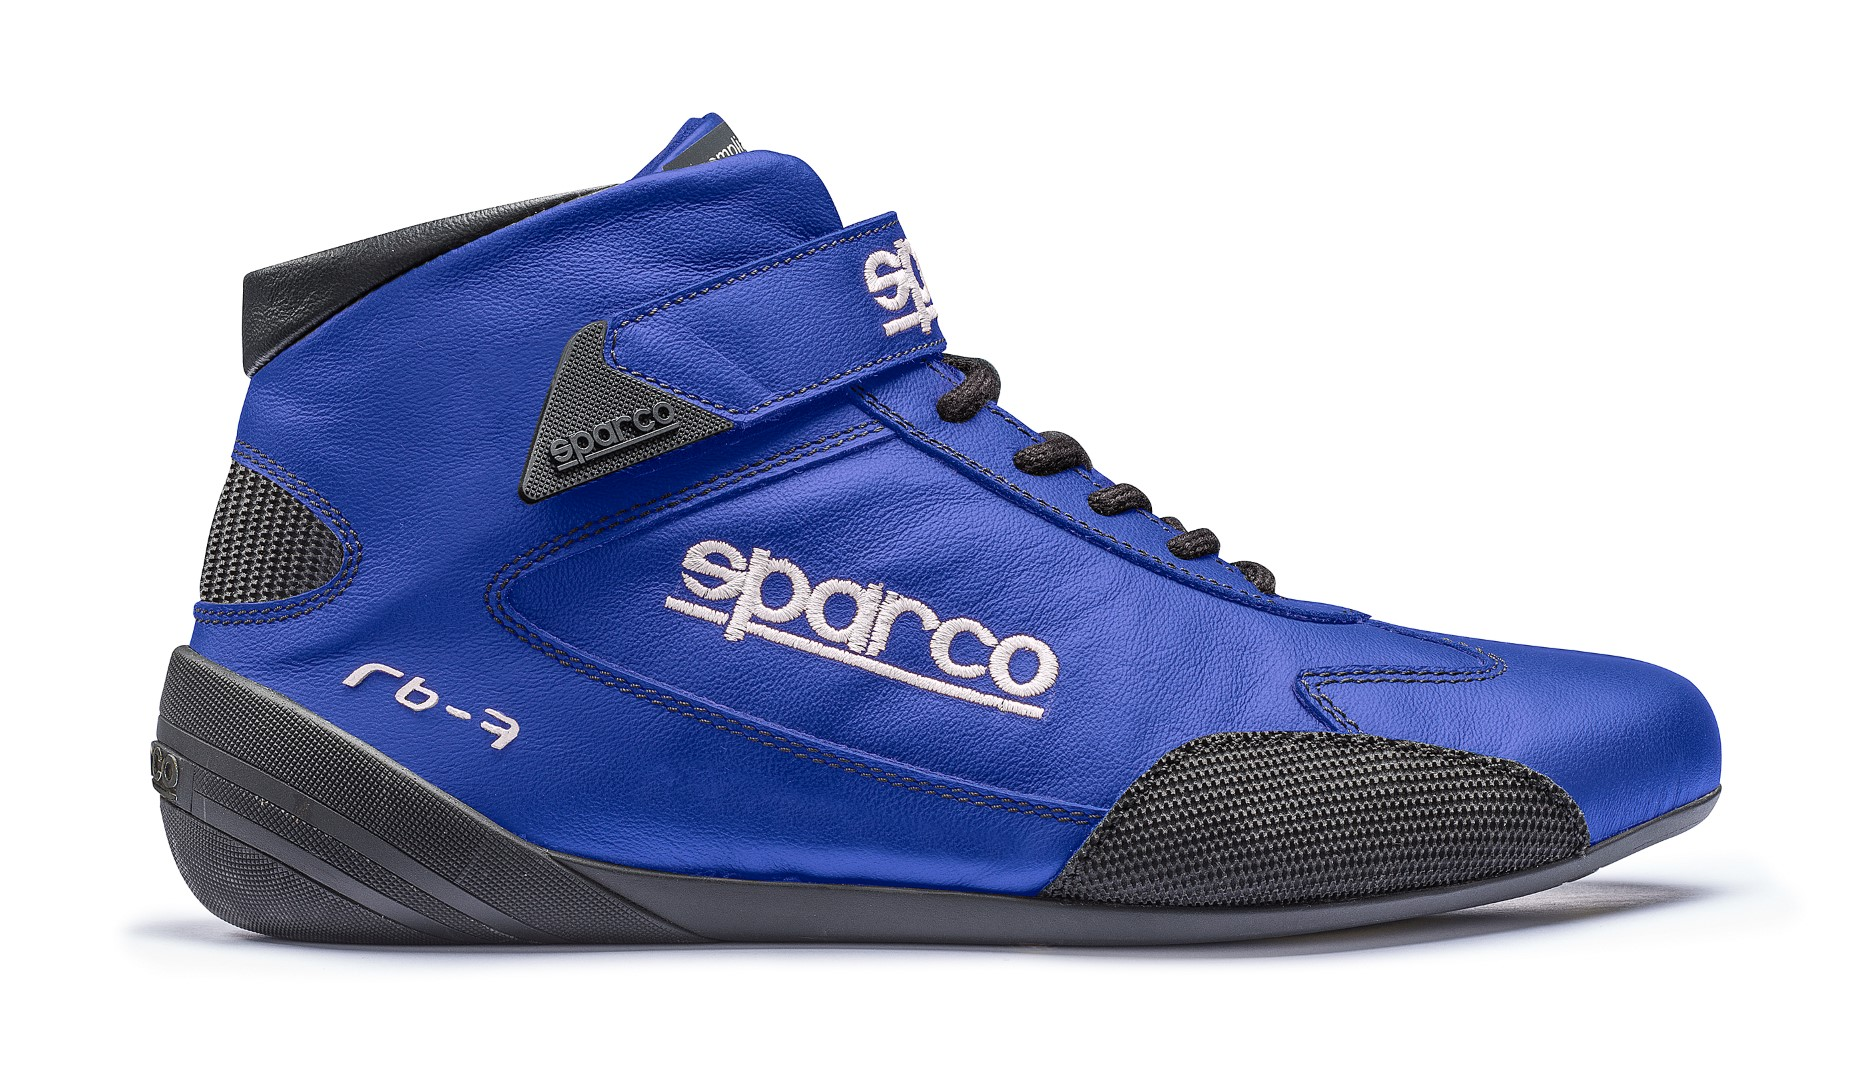 Sparco Blue Cross RB-7 Driving Shoes EU 38 - 00122438AZ